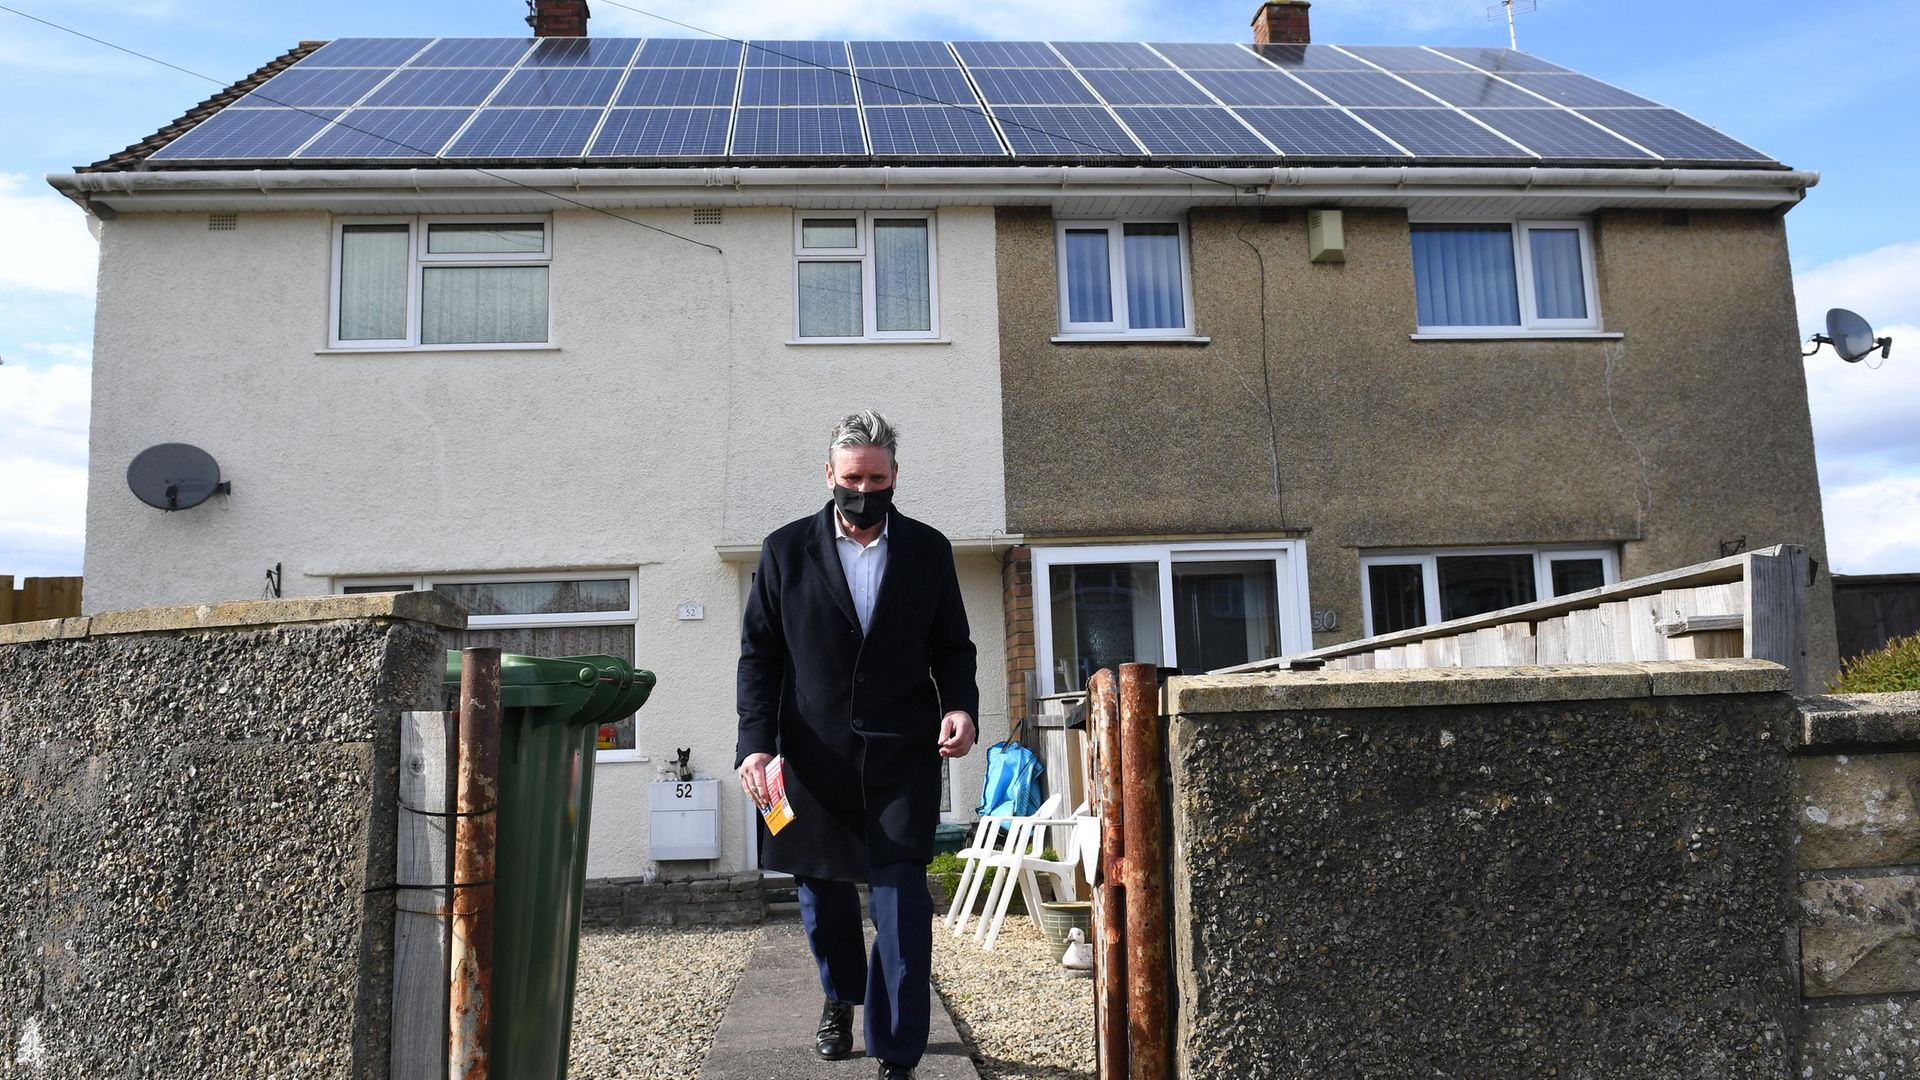 Leader of the Labour Party Sir Keir Starmer door to door canvassing in Keynsham, Somerset, whilst on the election campaign trail - Credit: PA